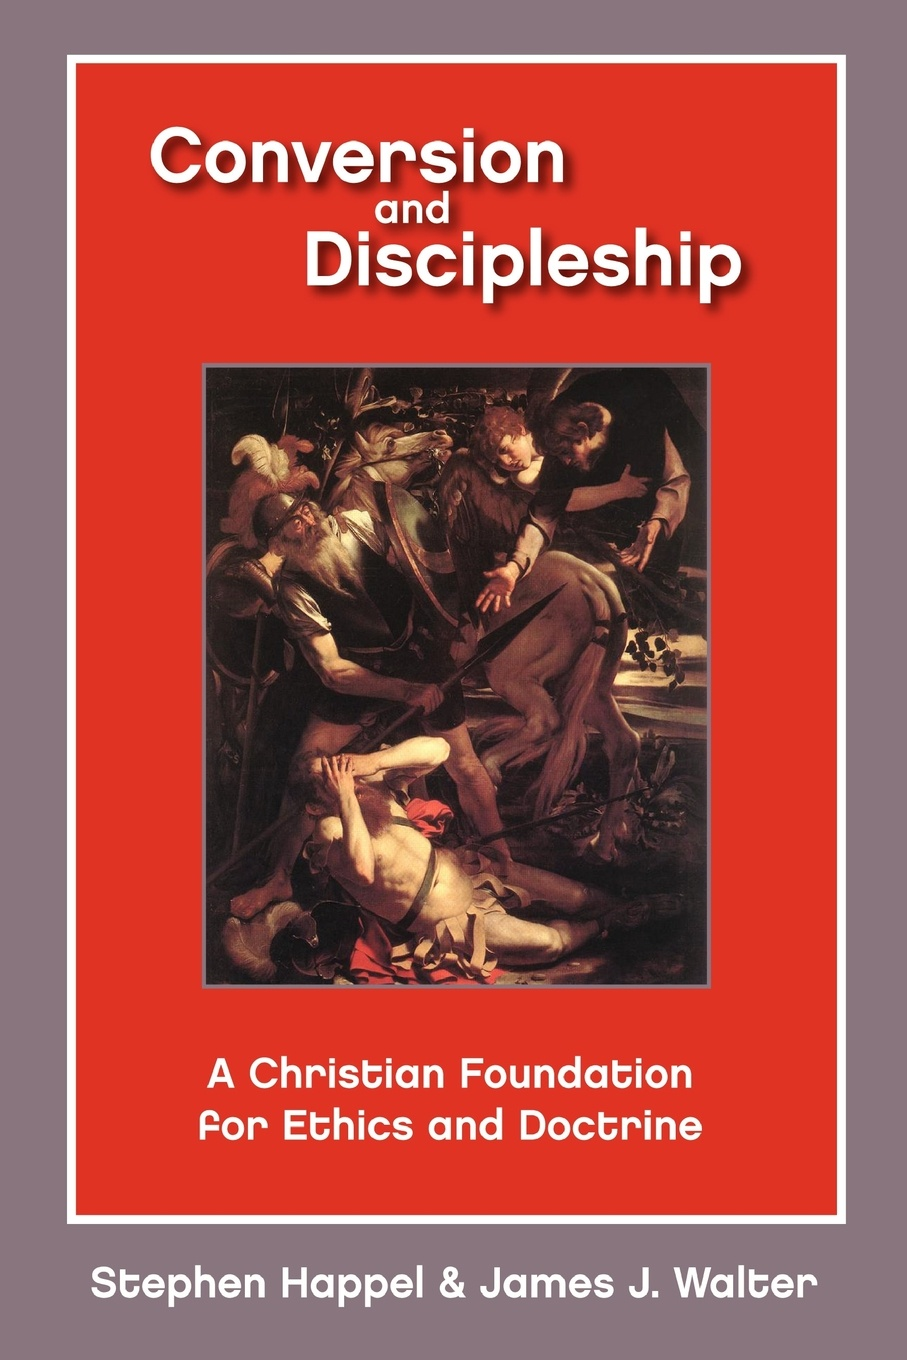 Stephen Professor Happel, James J. Walter Conversion and Discipleship. A Christian Foundation for Ethics and Doctrine eric j lott discipleship and dialogue